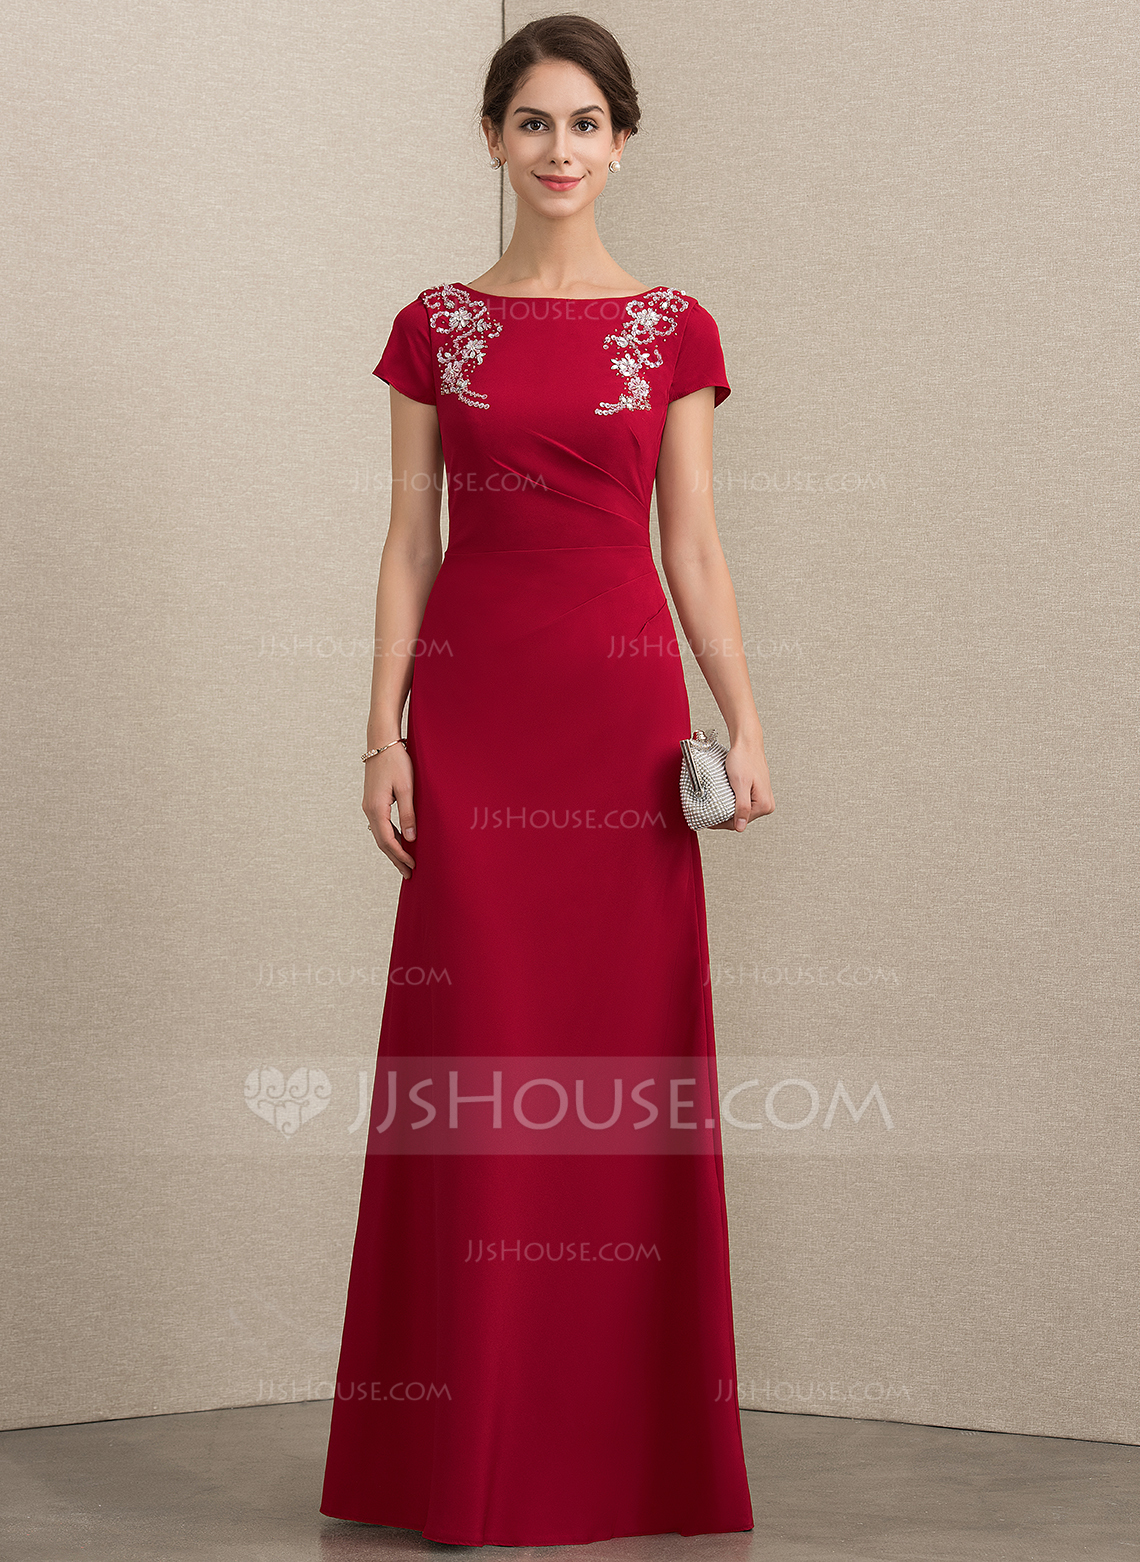 A-Line/Princess Scoop Neck Floor-Length Stretch Crepe Mother of the Bride Dress With Beading Sequins